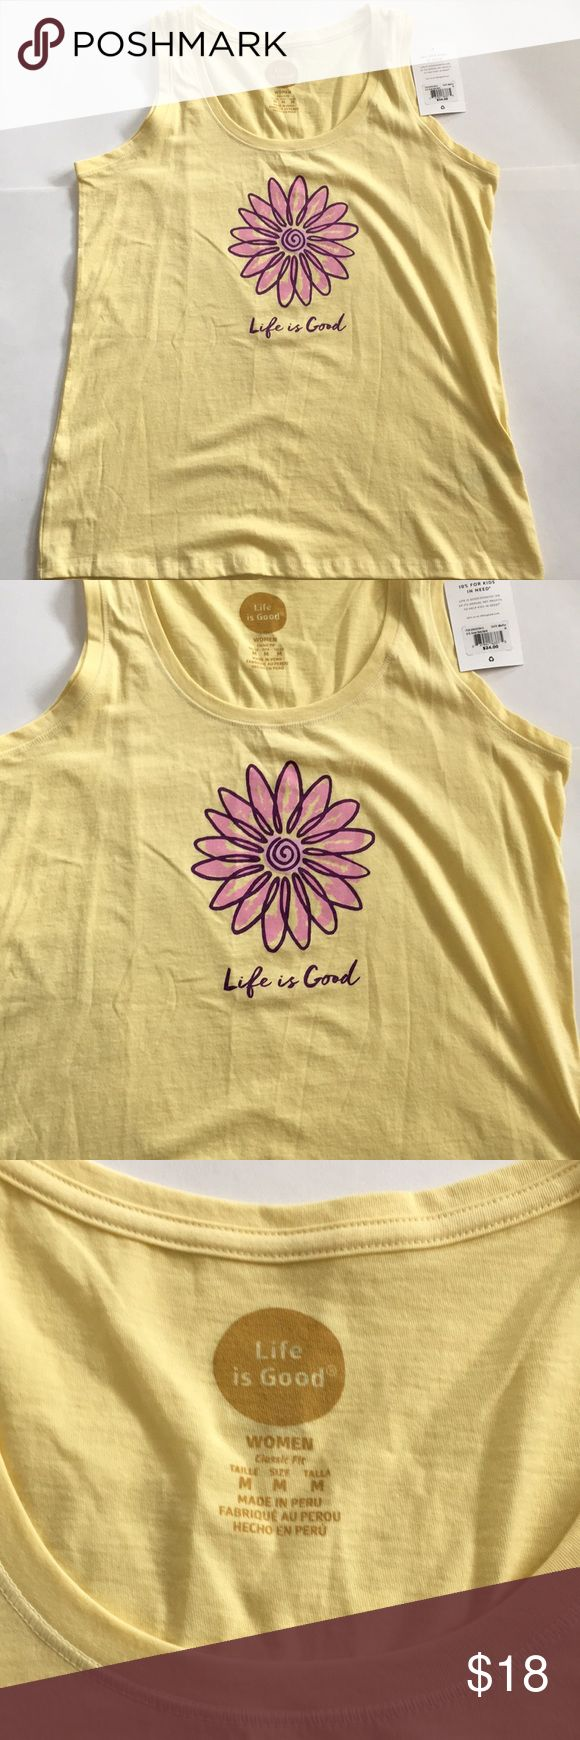 Life is Good Yellow Tank Top Flower NWT. size M Life is Good yellow tank top with cute flower design. Brand new with tag.  Size Medium. Women classic fit. 100% cotton Life Is Good Tops Tank Tops